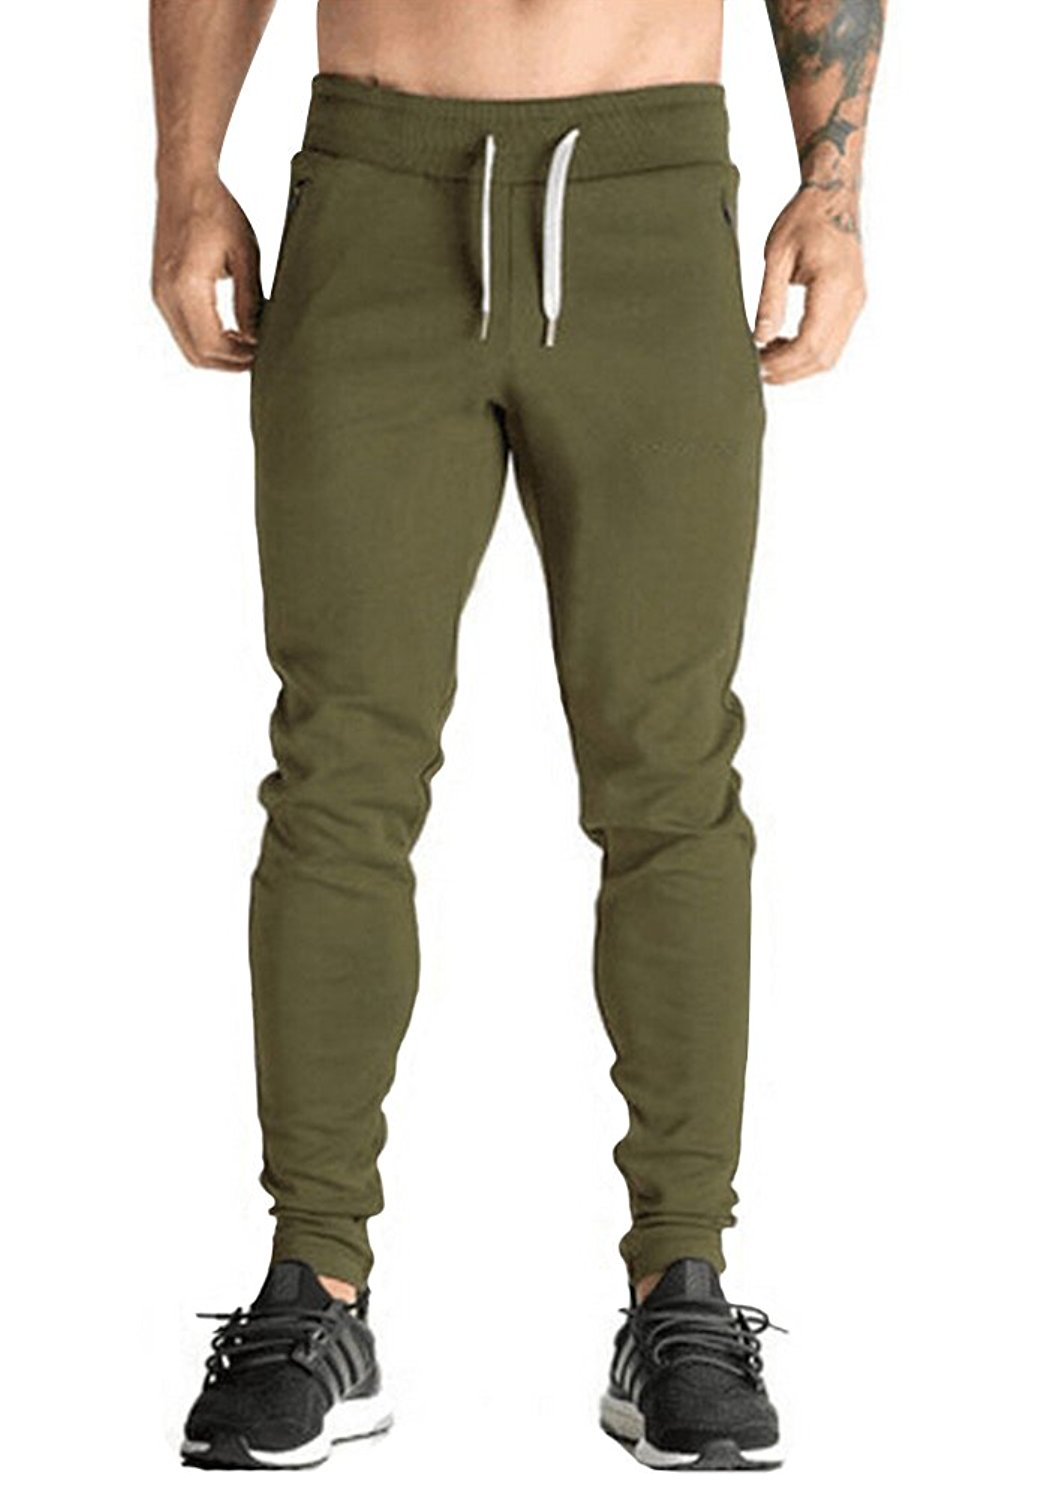 Coolred-Men Pockets Zipper Solid-Colored Drawstring Sport Casual Sweatpant